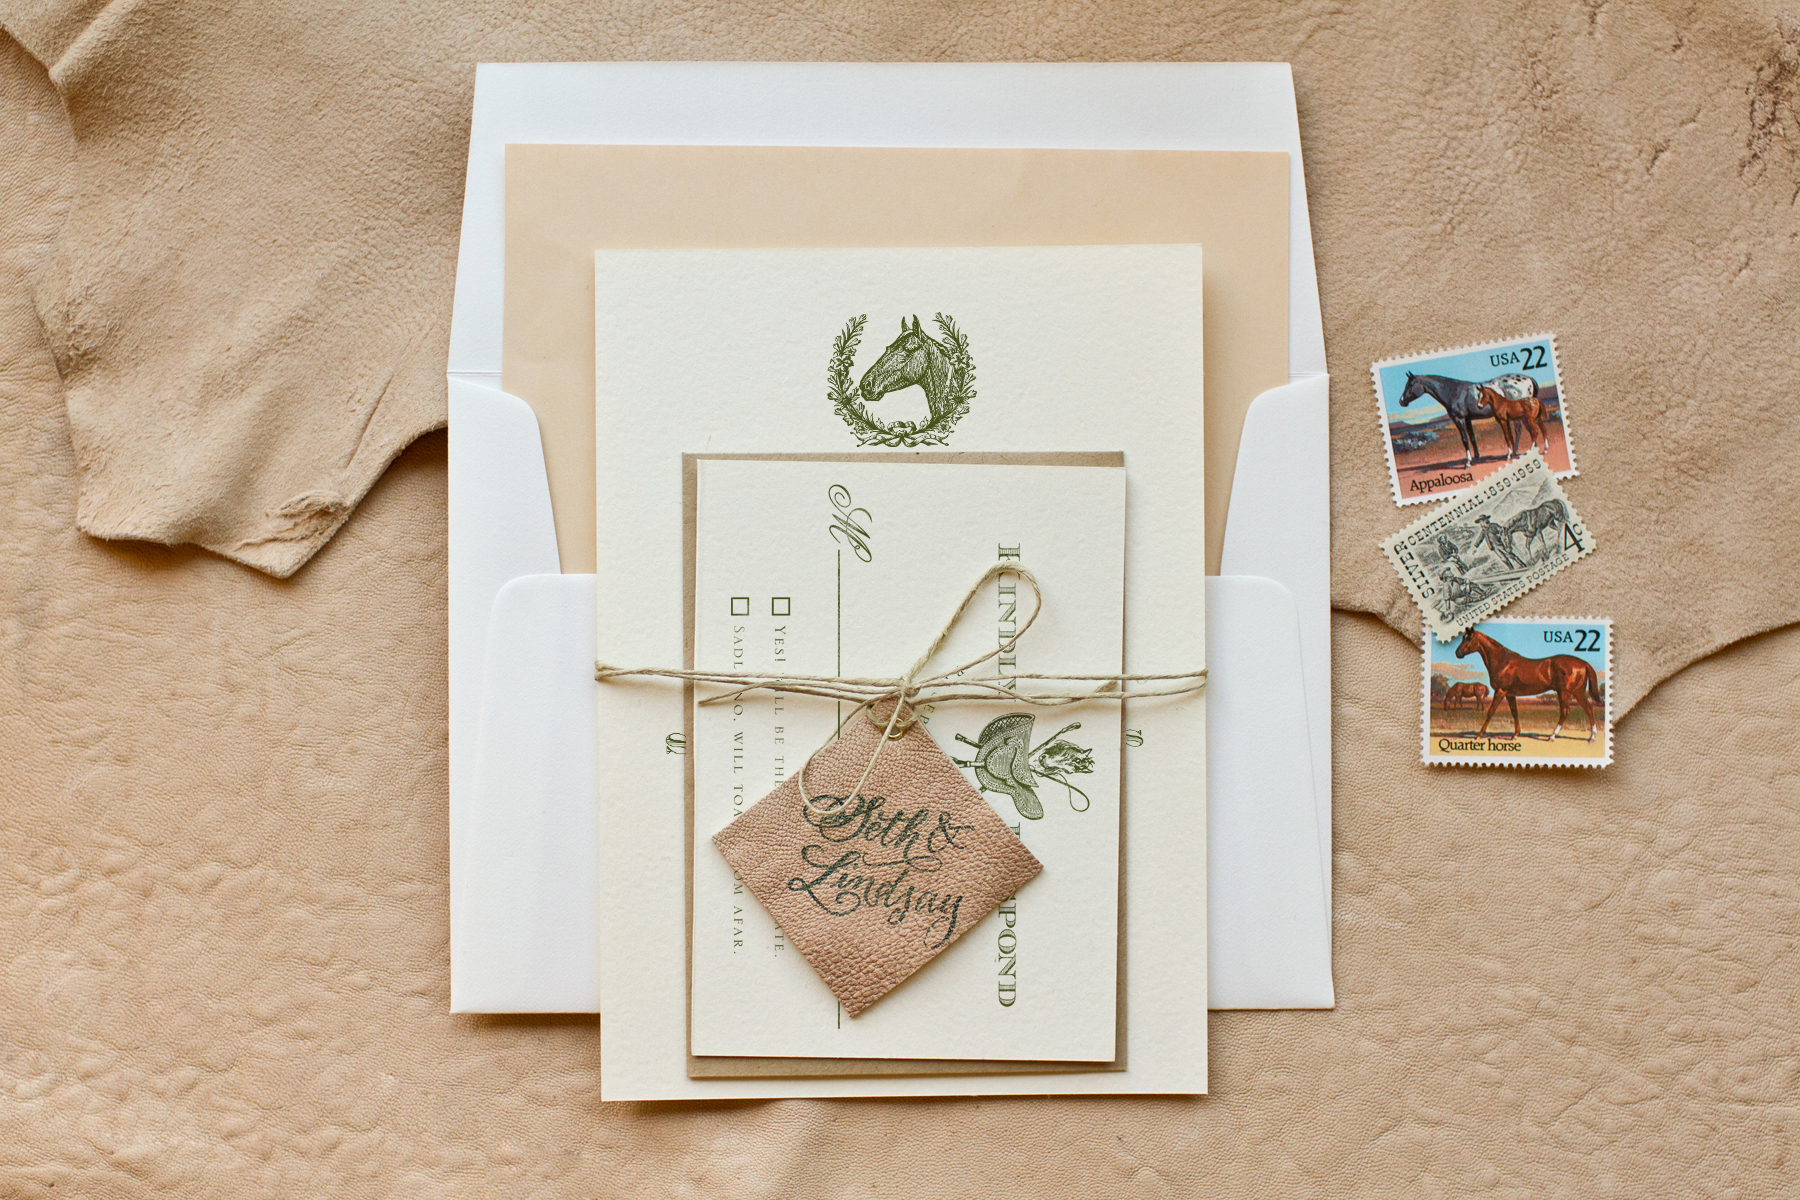 diy stamped equestrian invitations with monogrammed leather tags wedding invitation stamps